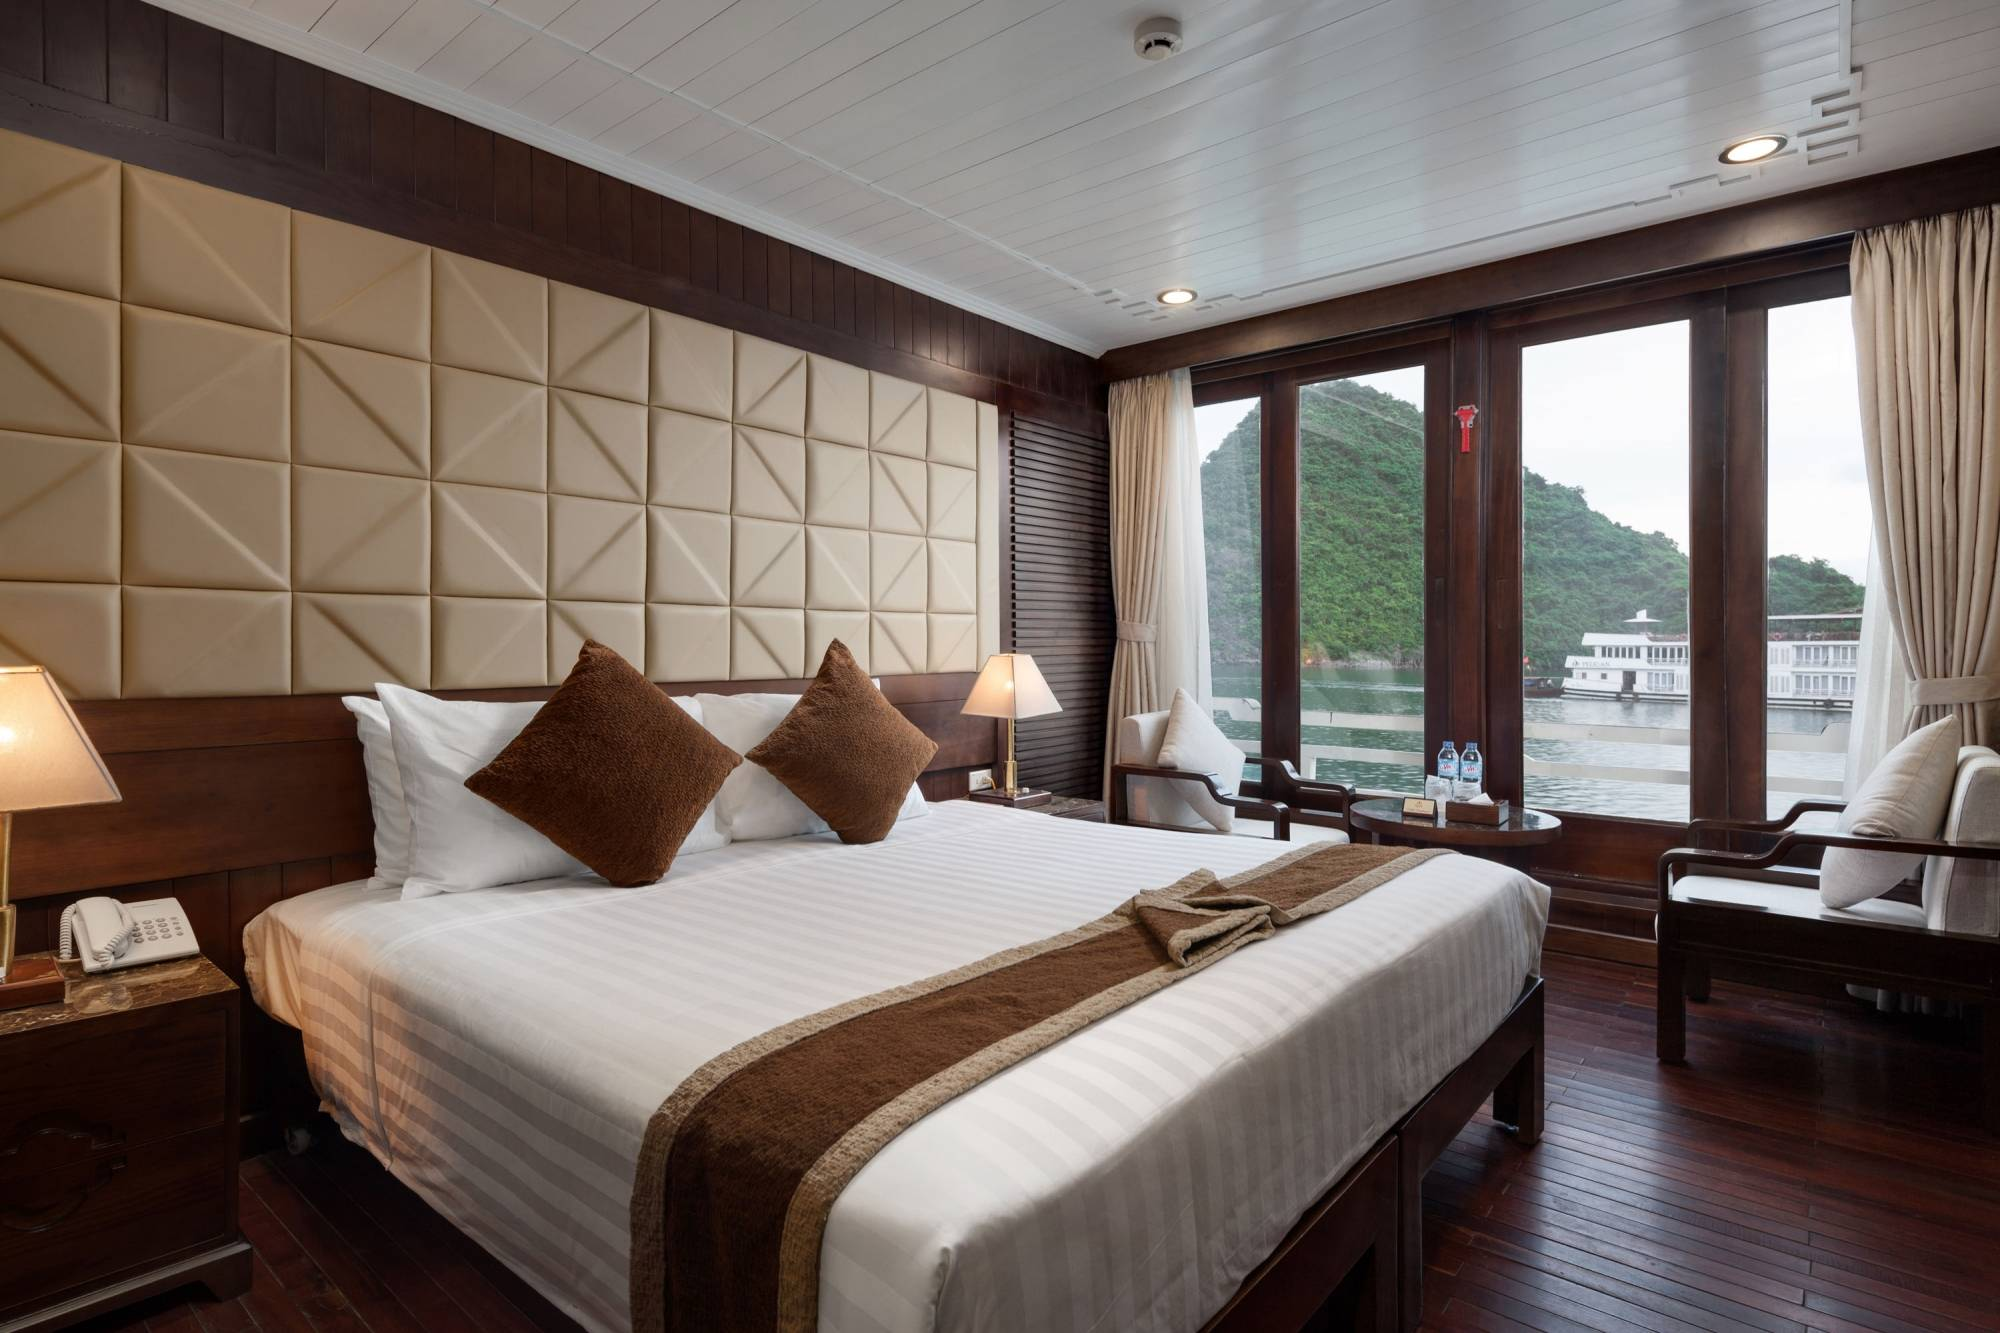 Pelican Cruise - Halong Bay Tour for Backpackers